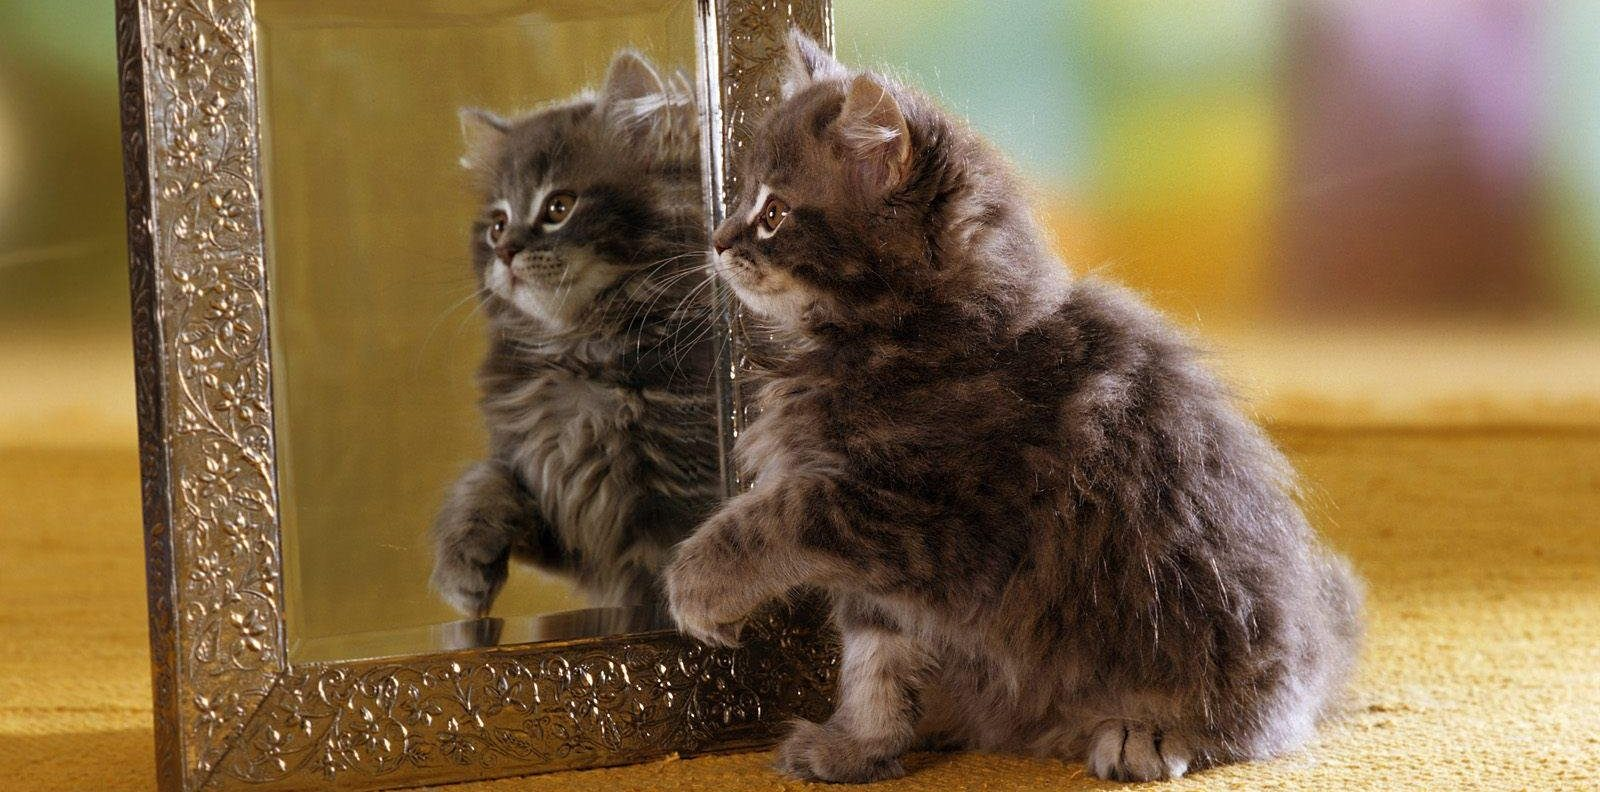 the_cat_and_the_mirror_wallpaper_47fa0